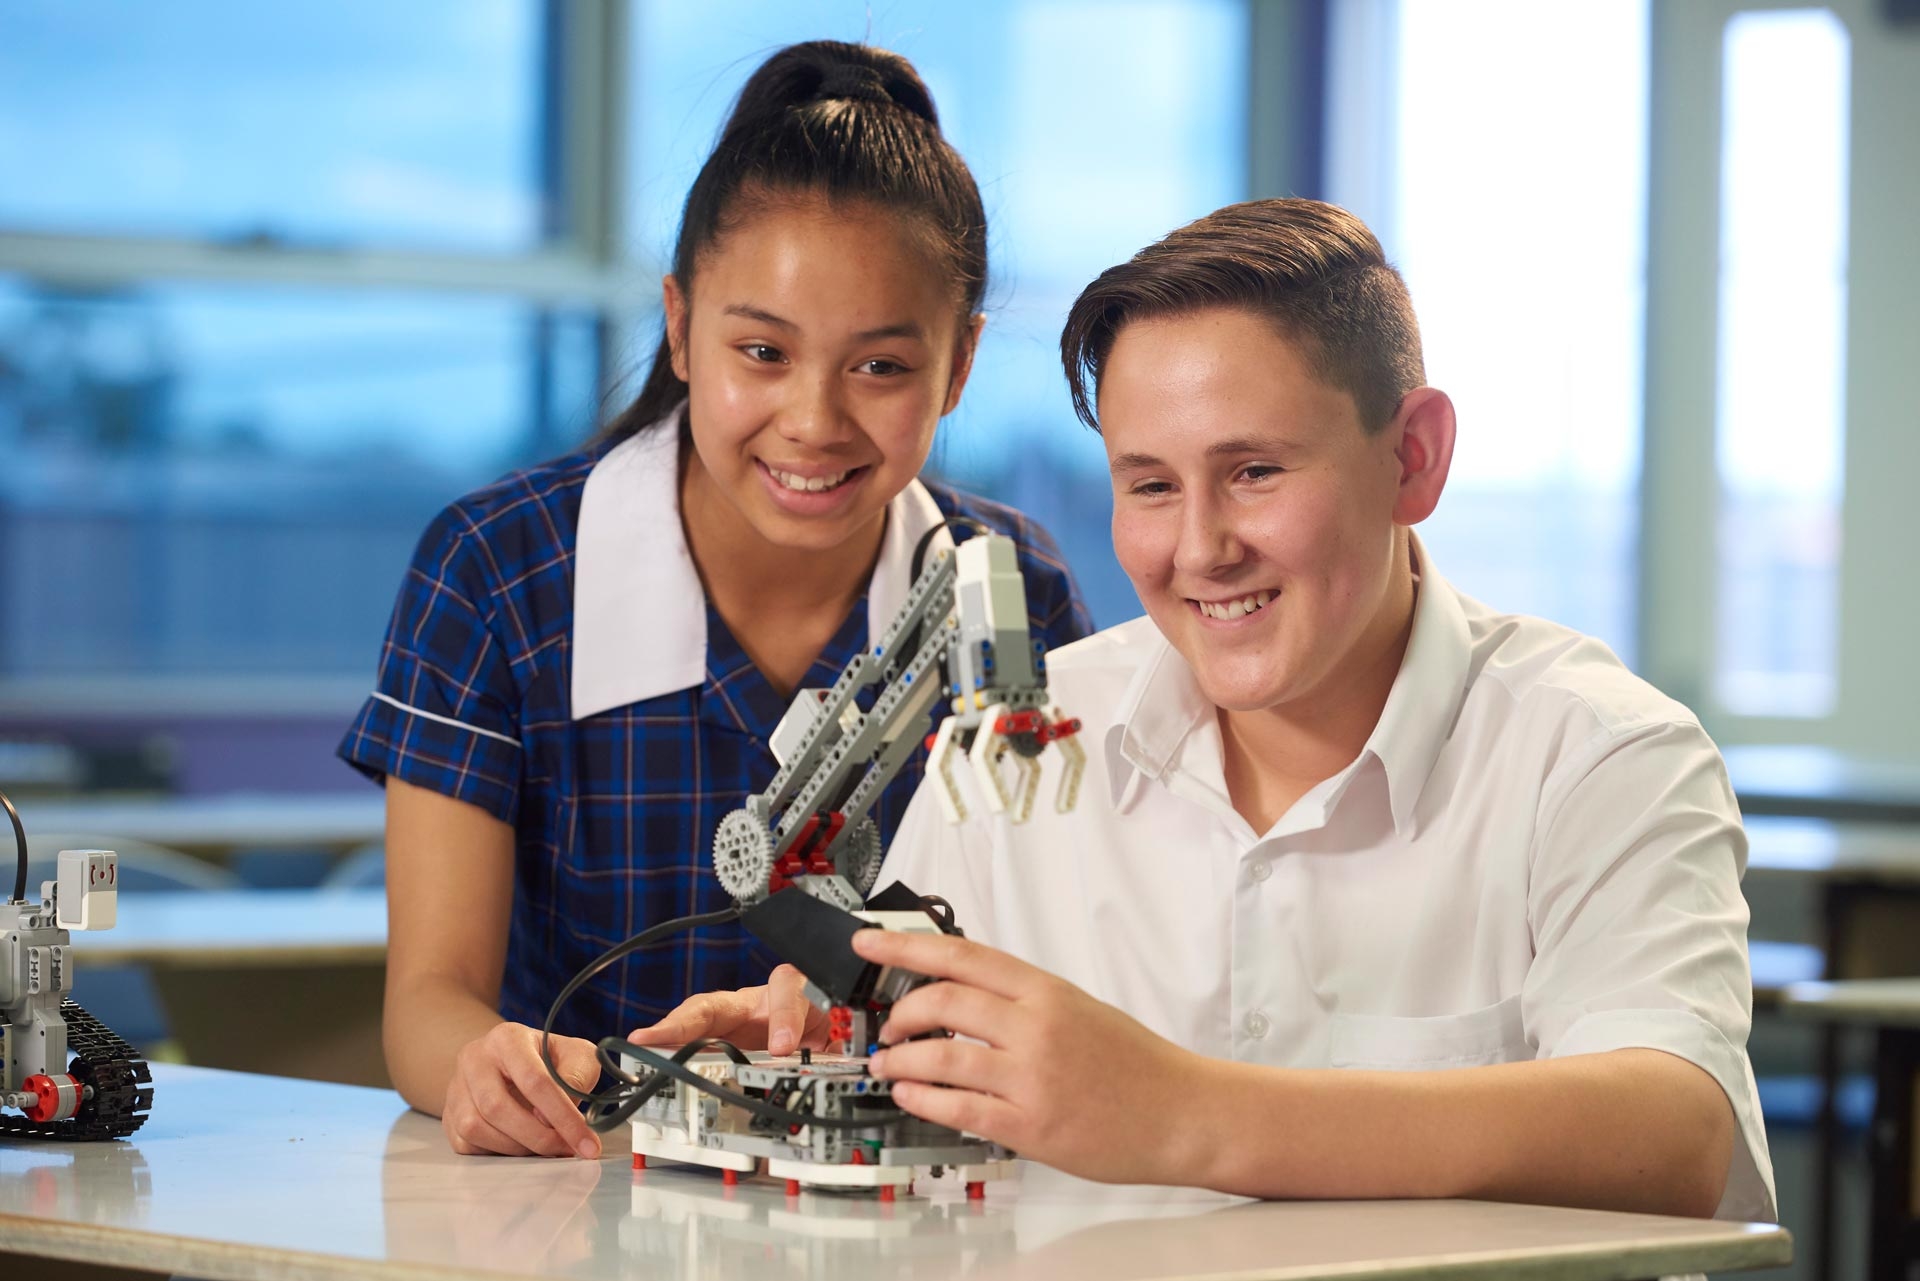 Robotics students